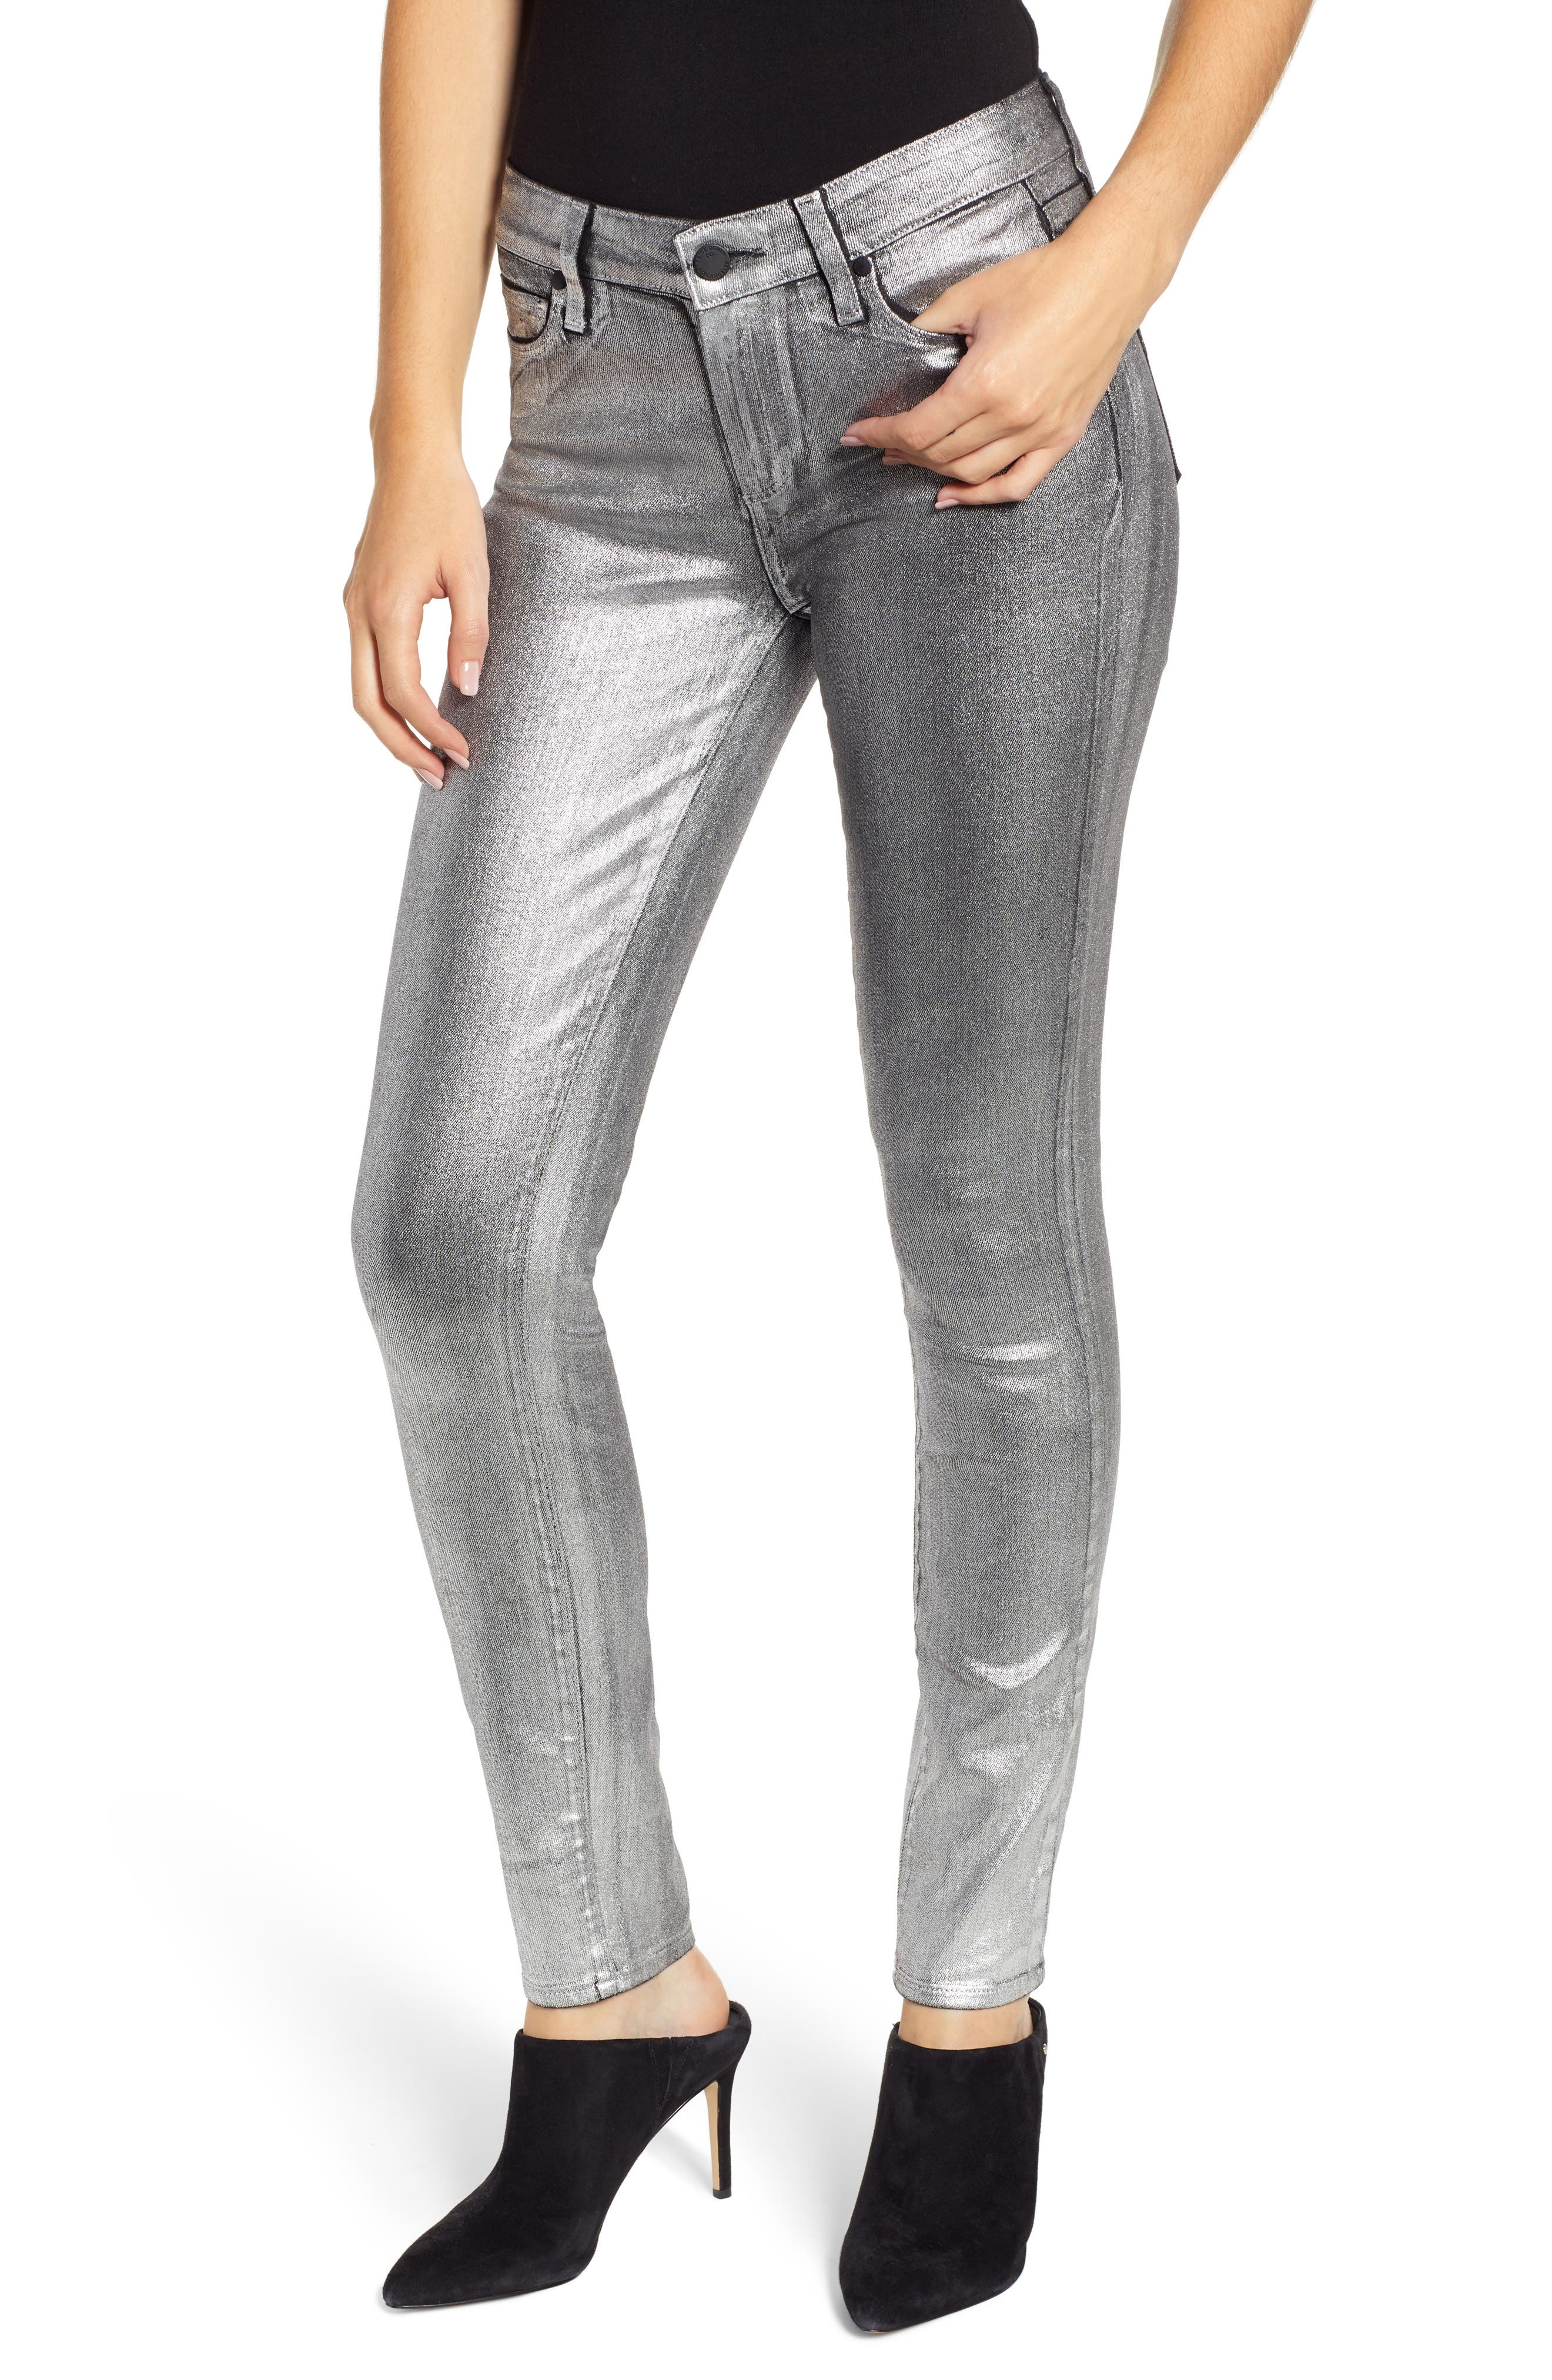 Verdugo Skinny Jeans,                         Main,                         color, SILVER GALAXY COATING